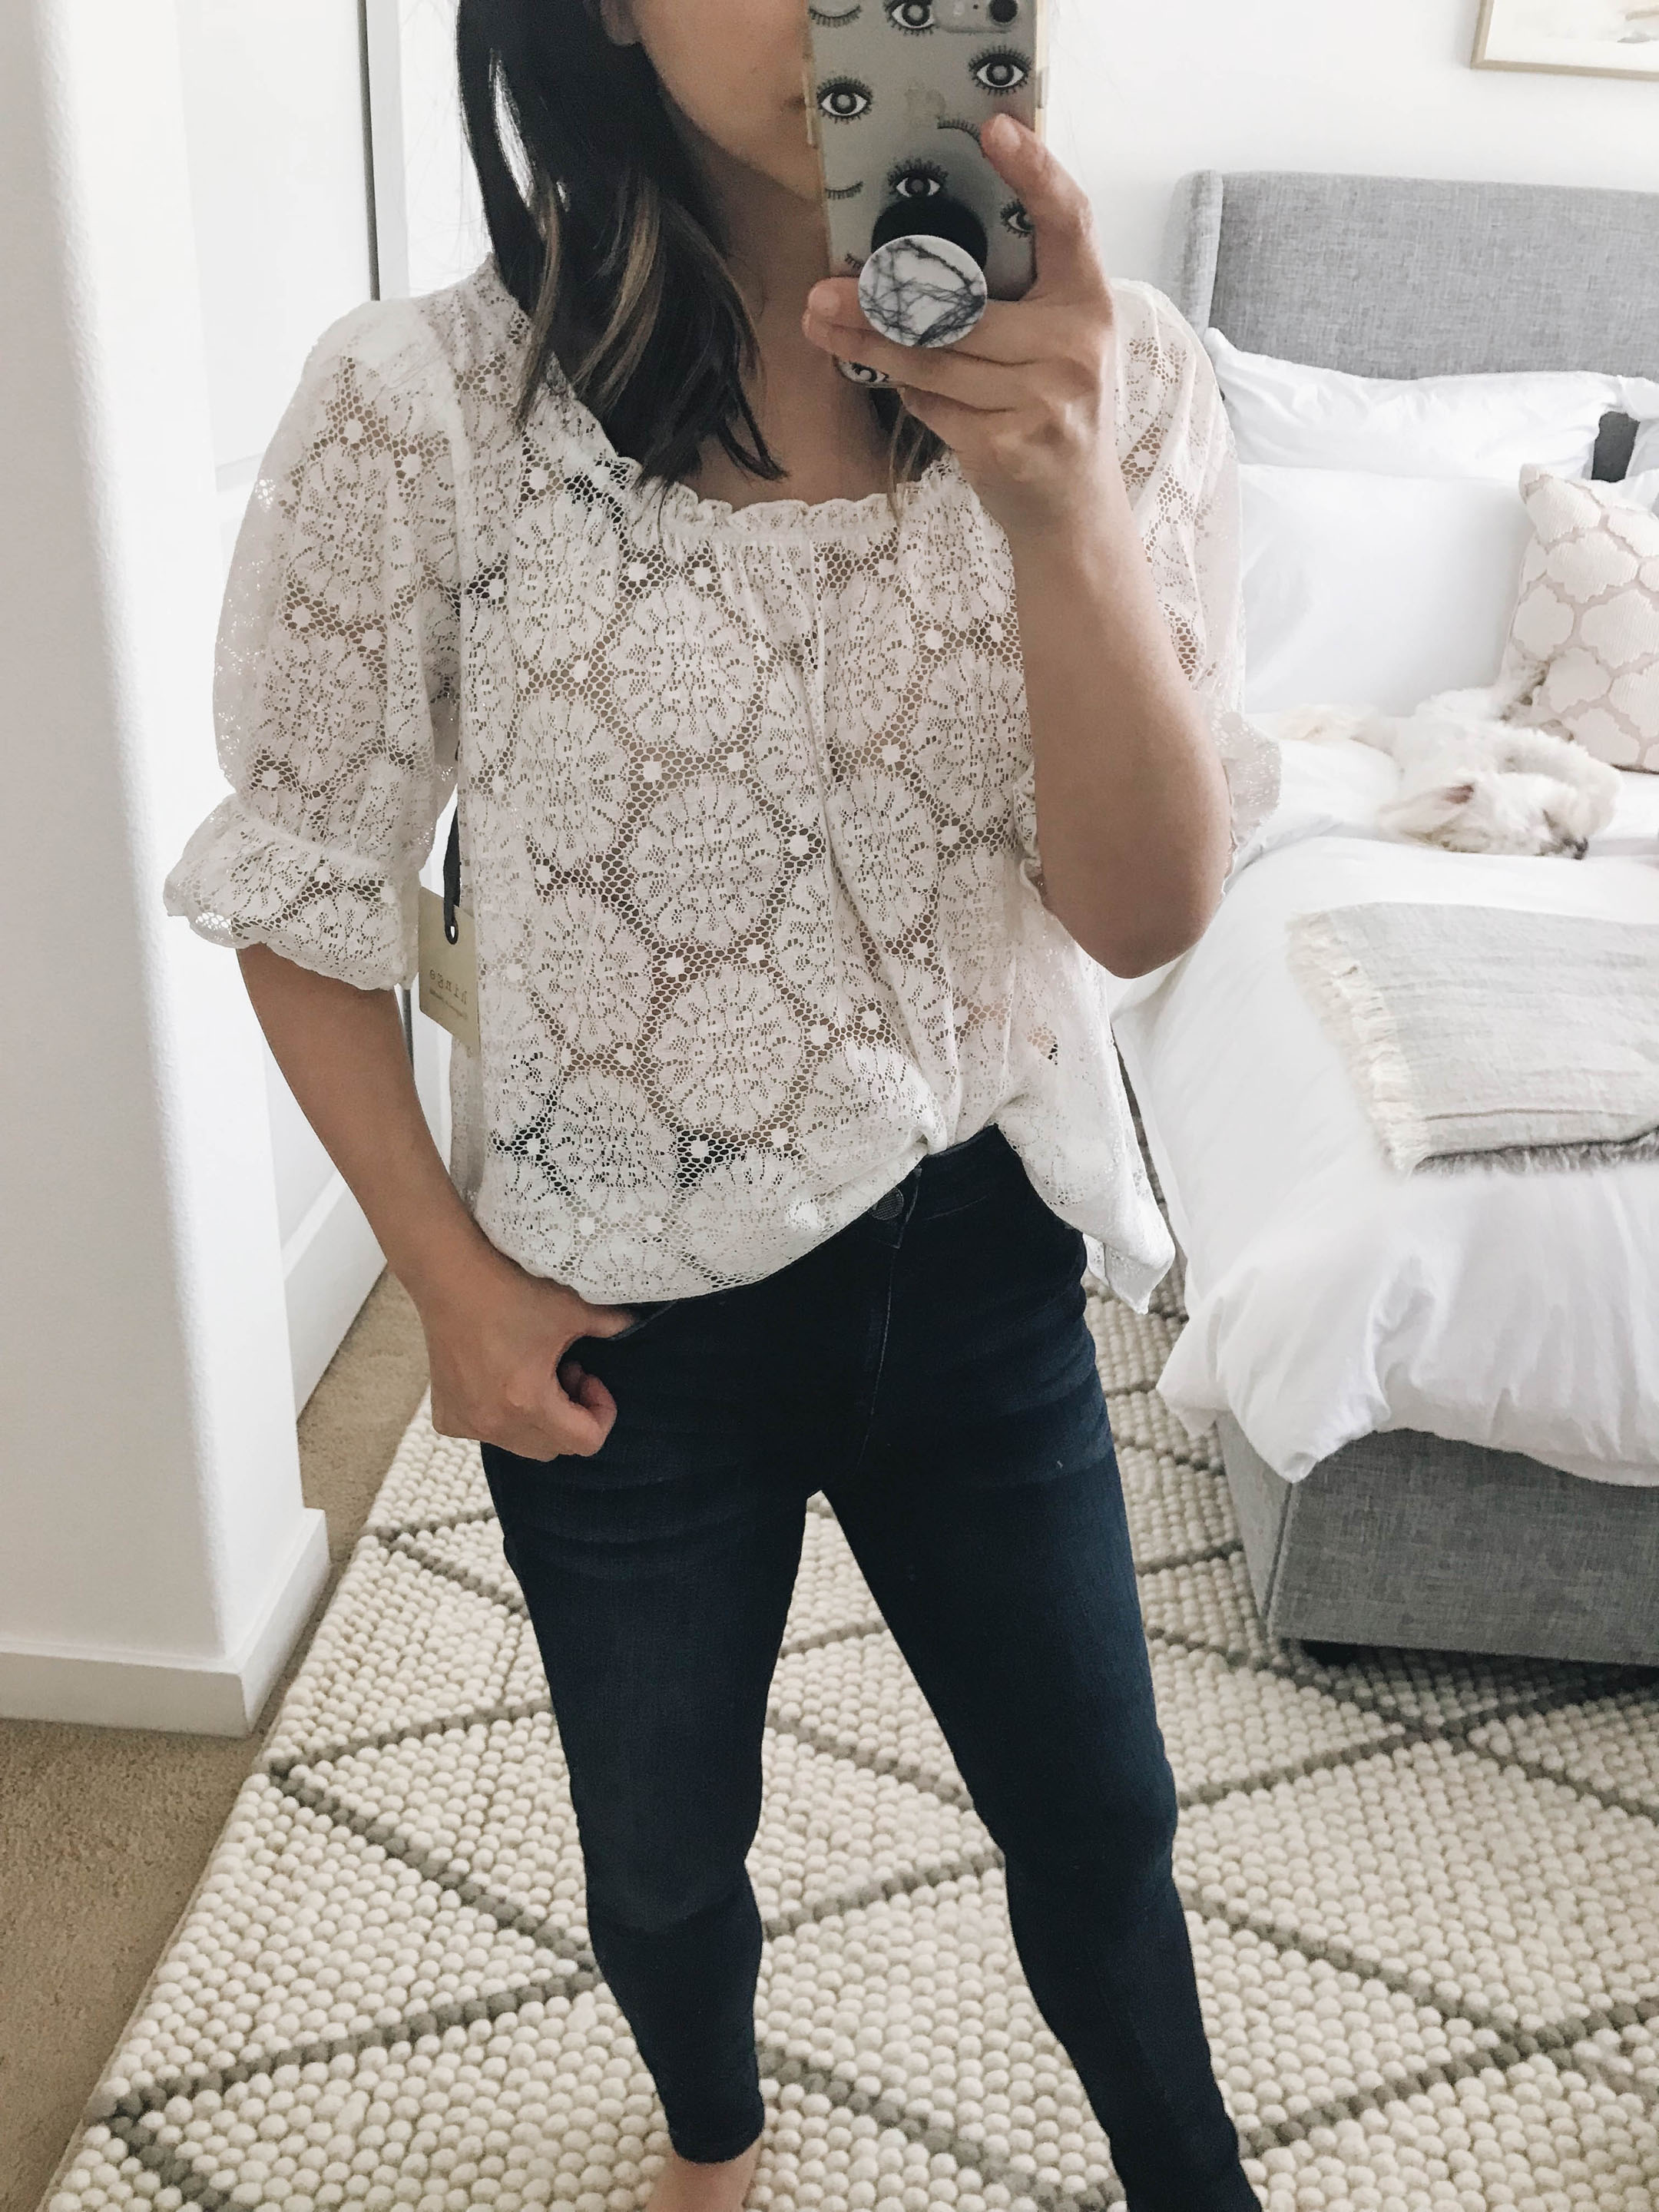 Hinge lace top 2